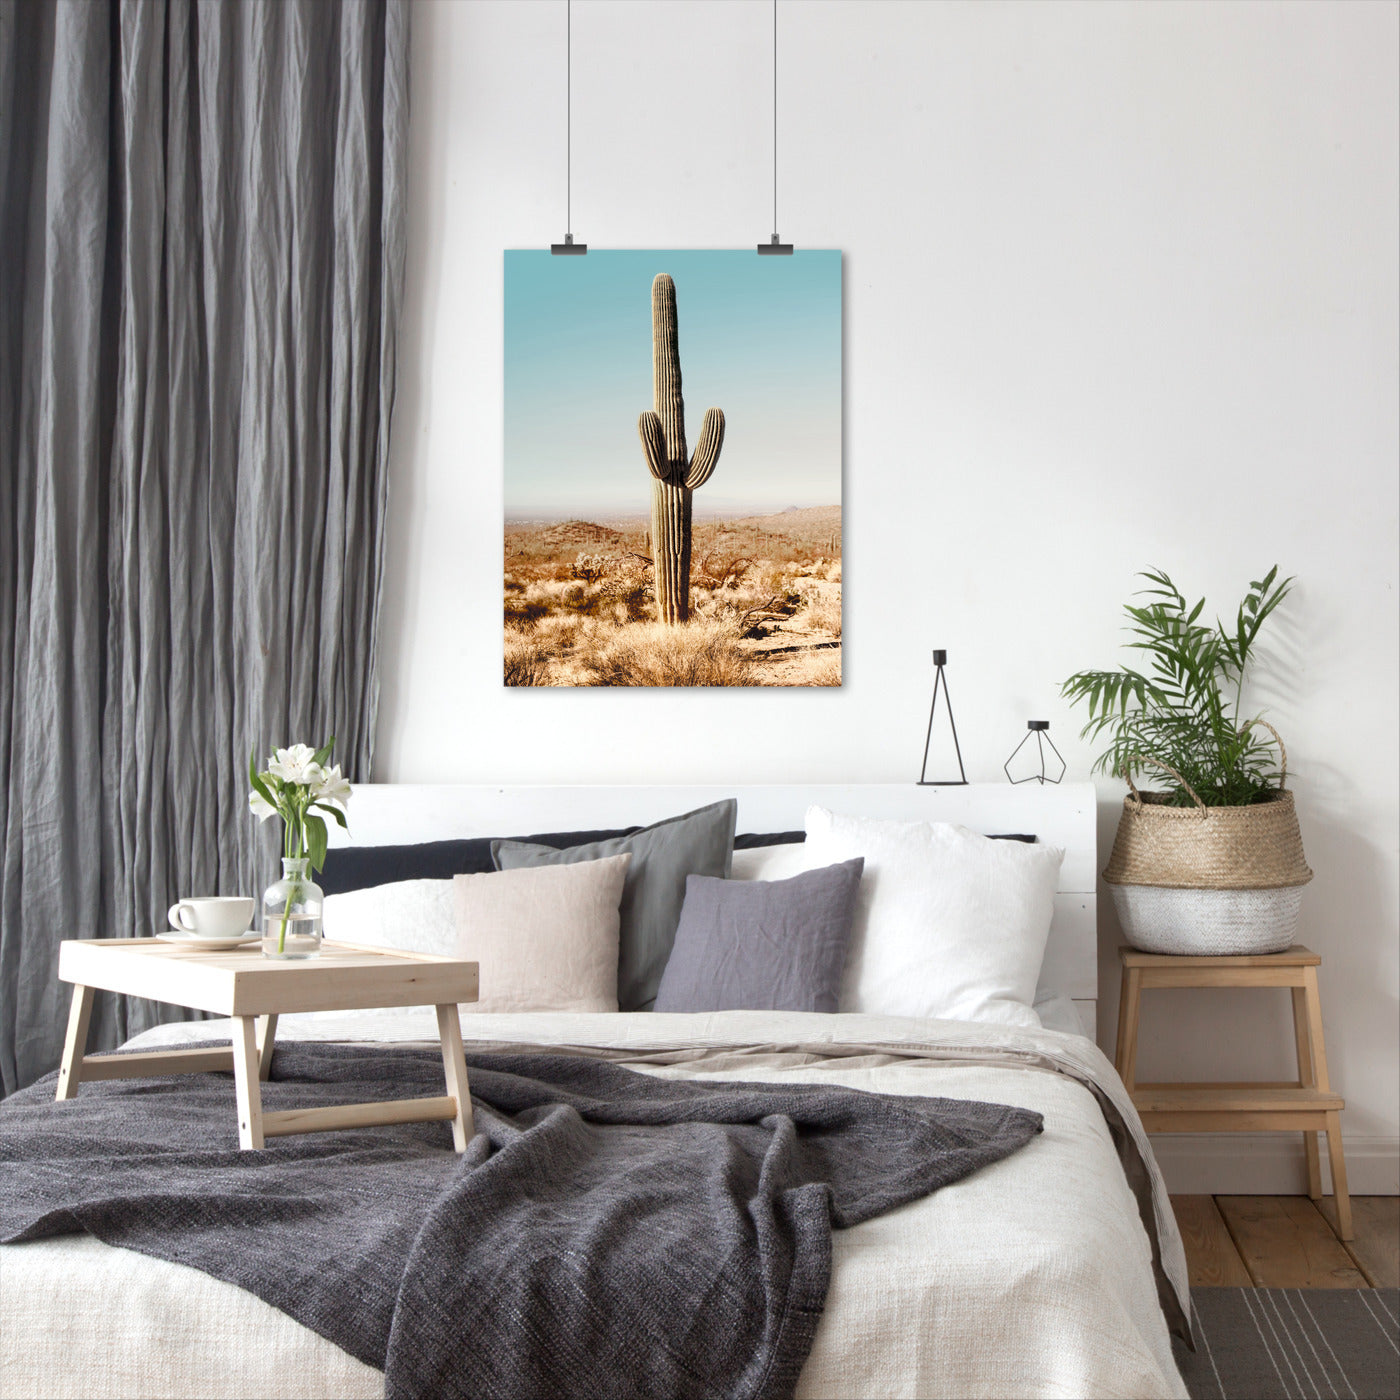 Desert Cactus Photo by Tanya Shumkina - Art Print - Americanflat